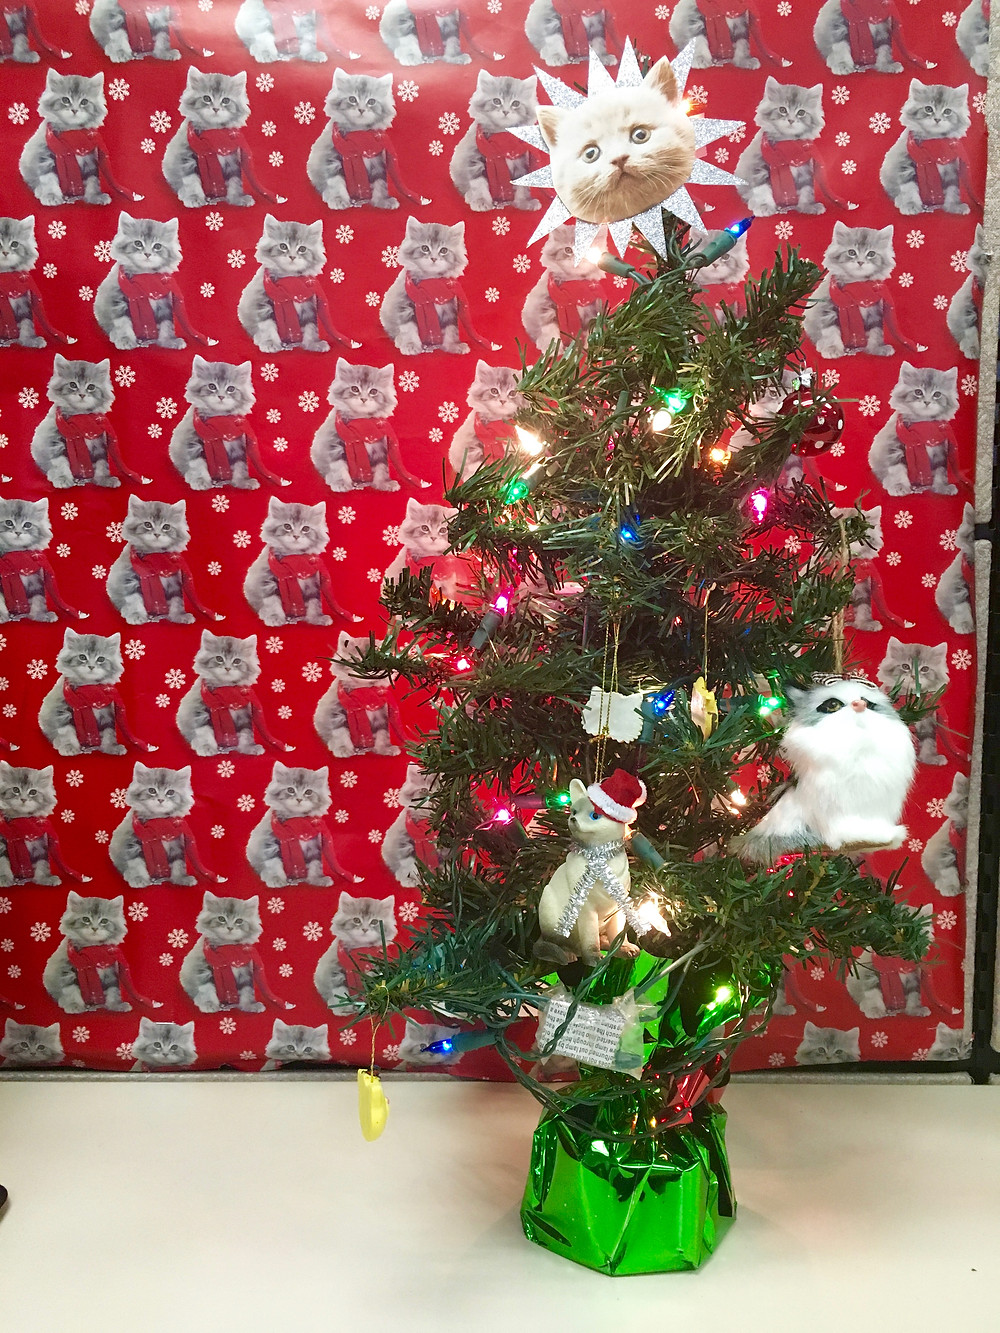 This is the Christmas cat wrapping paper I never thought I'd find and of course a home made star for the tree